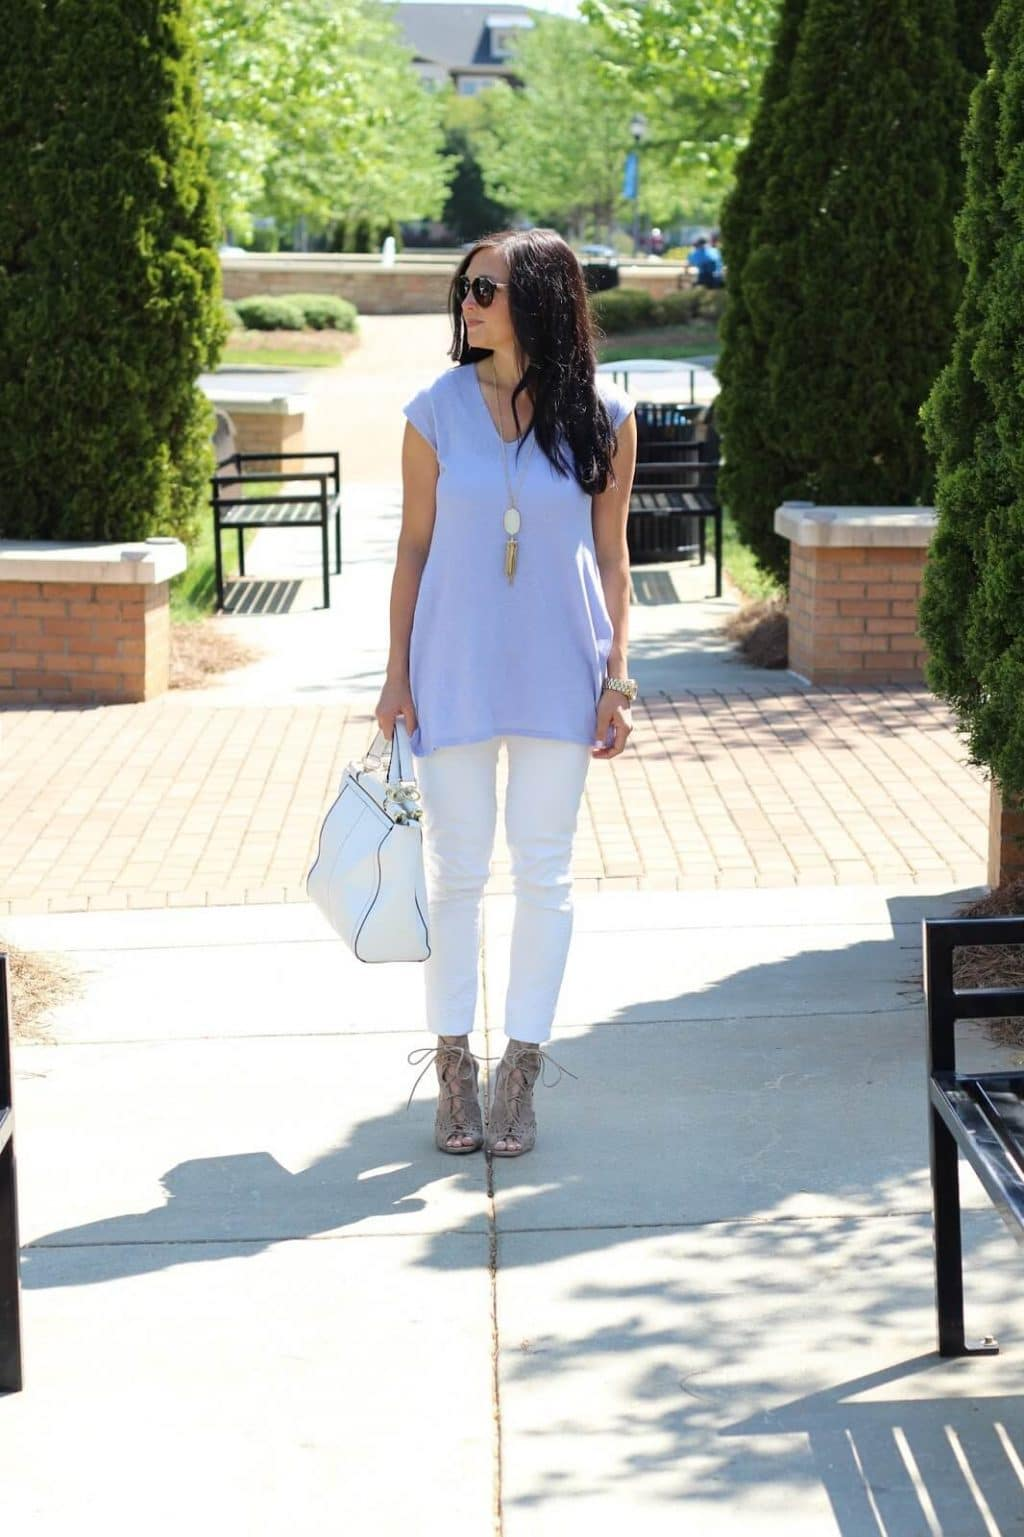 J. Jill tunic, white jeans, lace up cutout heels